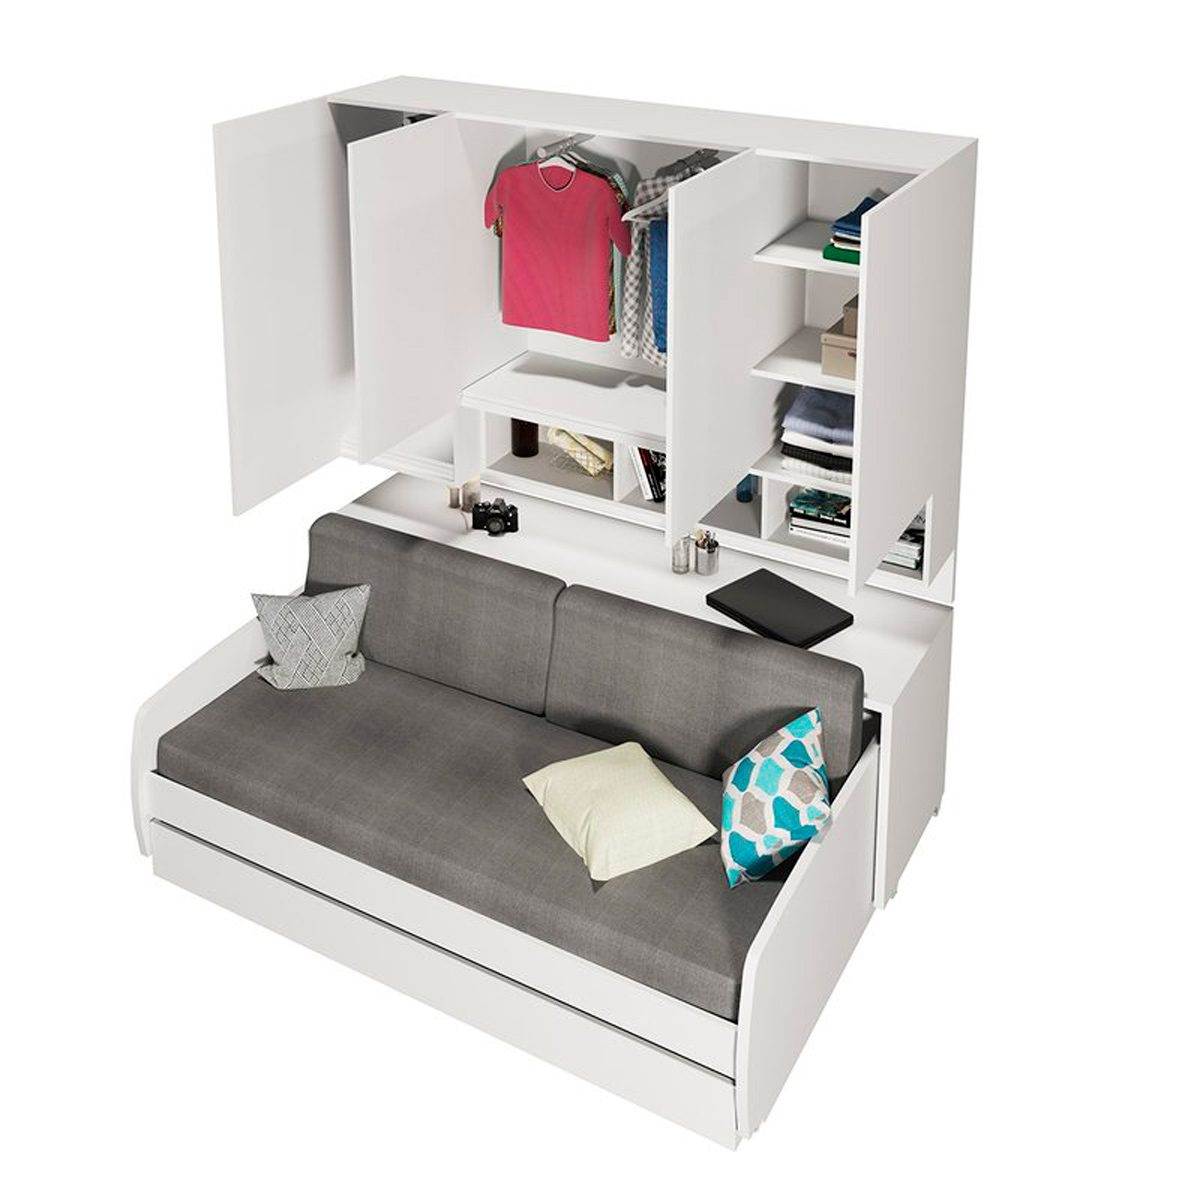 Genius Bed Ideas For Small Rooms Family Handyman